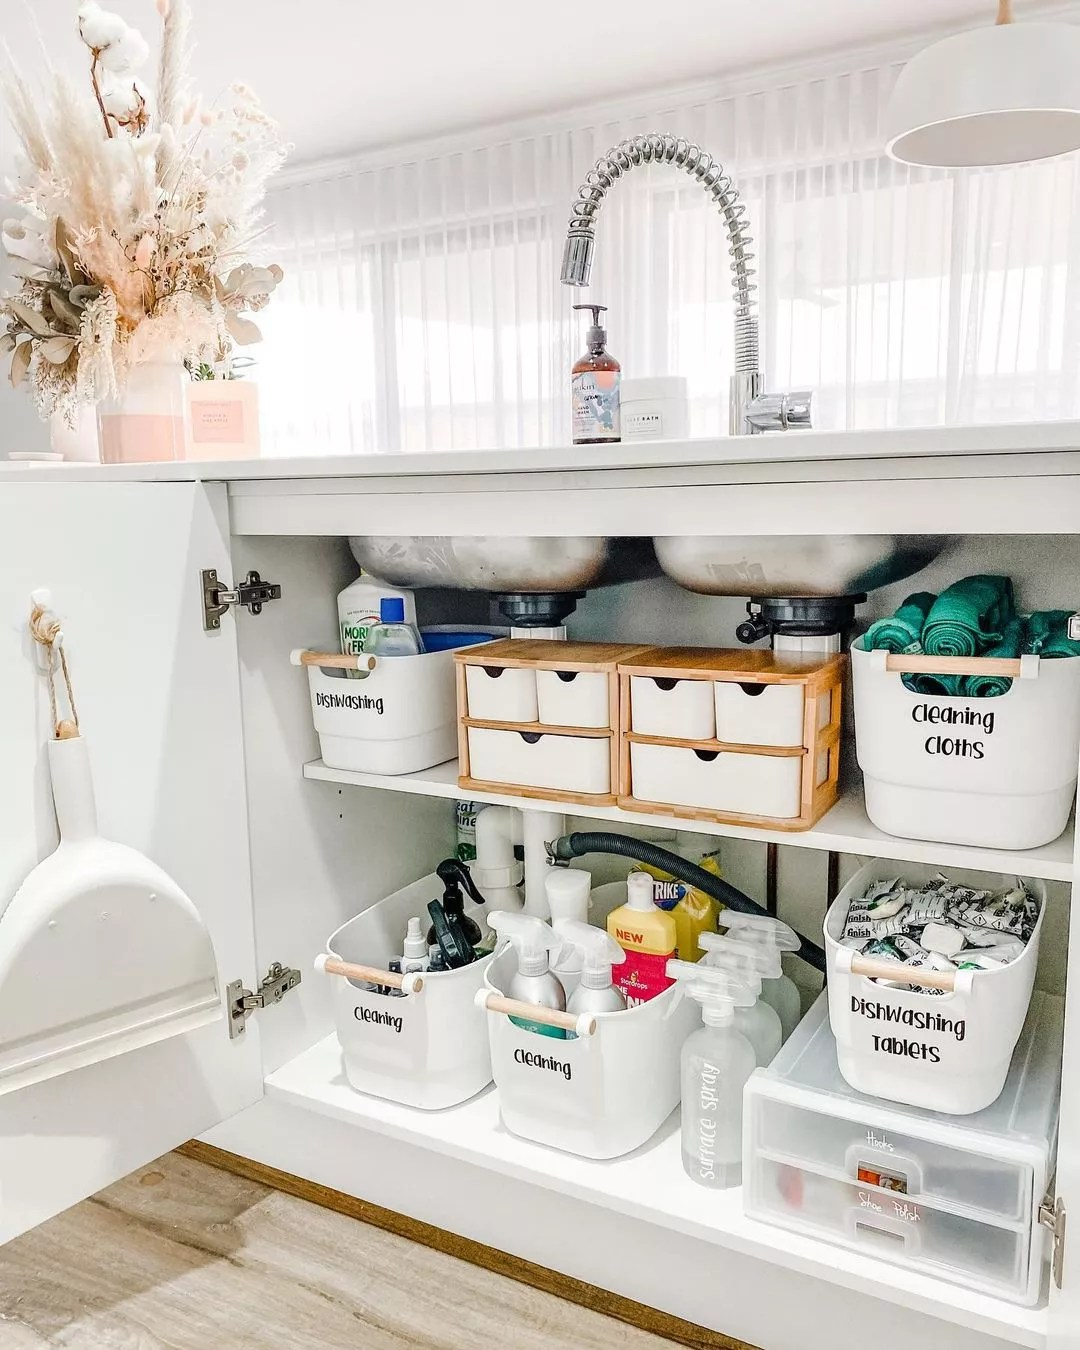 Under sink cabinet organized with shelving and storage bins. Photo by Instagram user @ashleejayinteriors